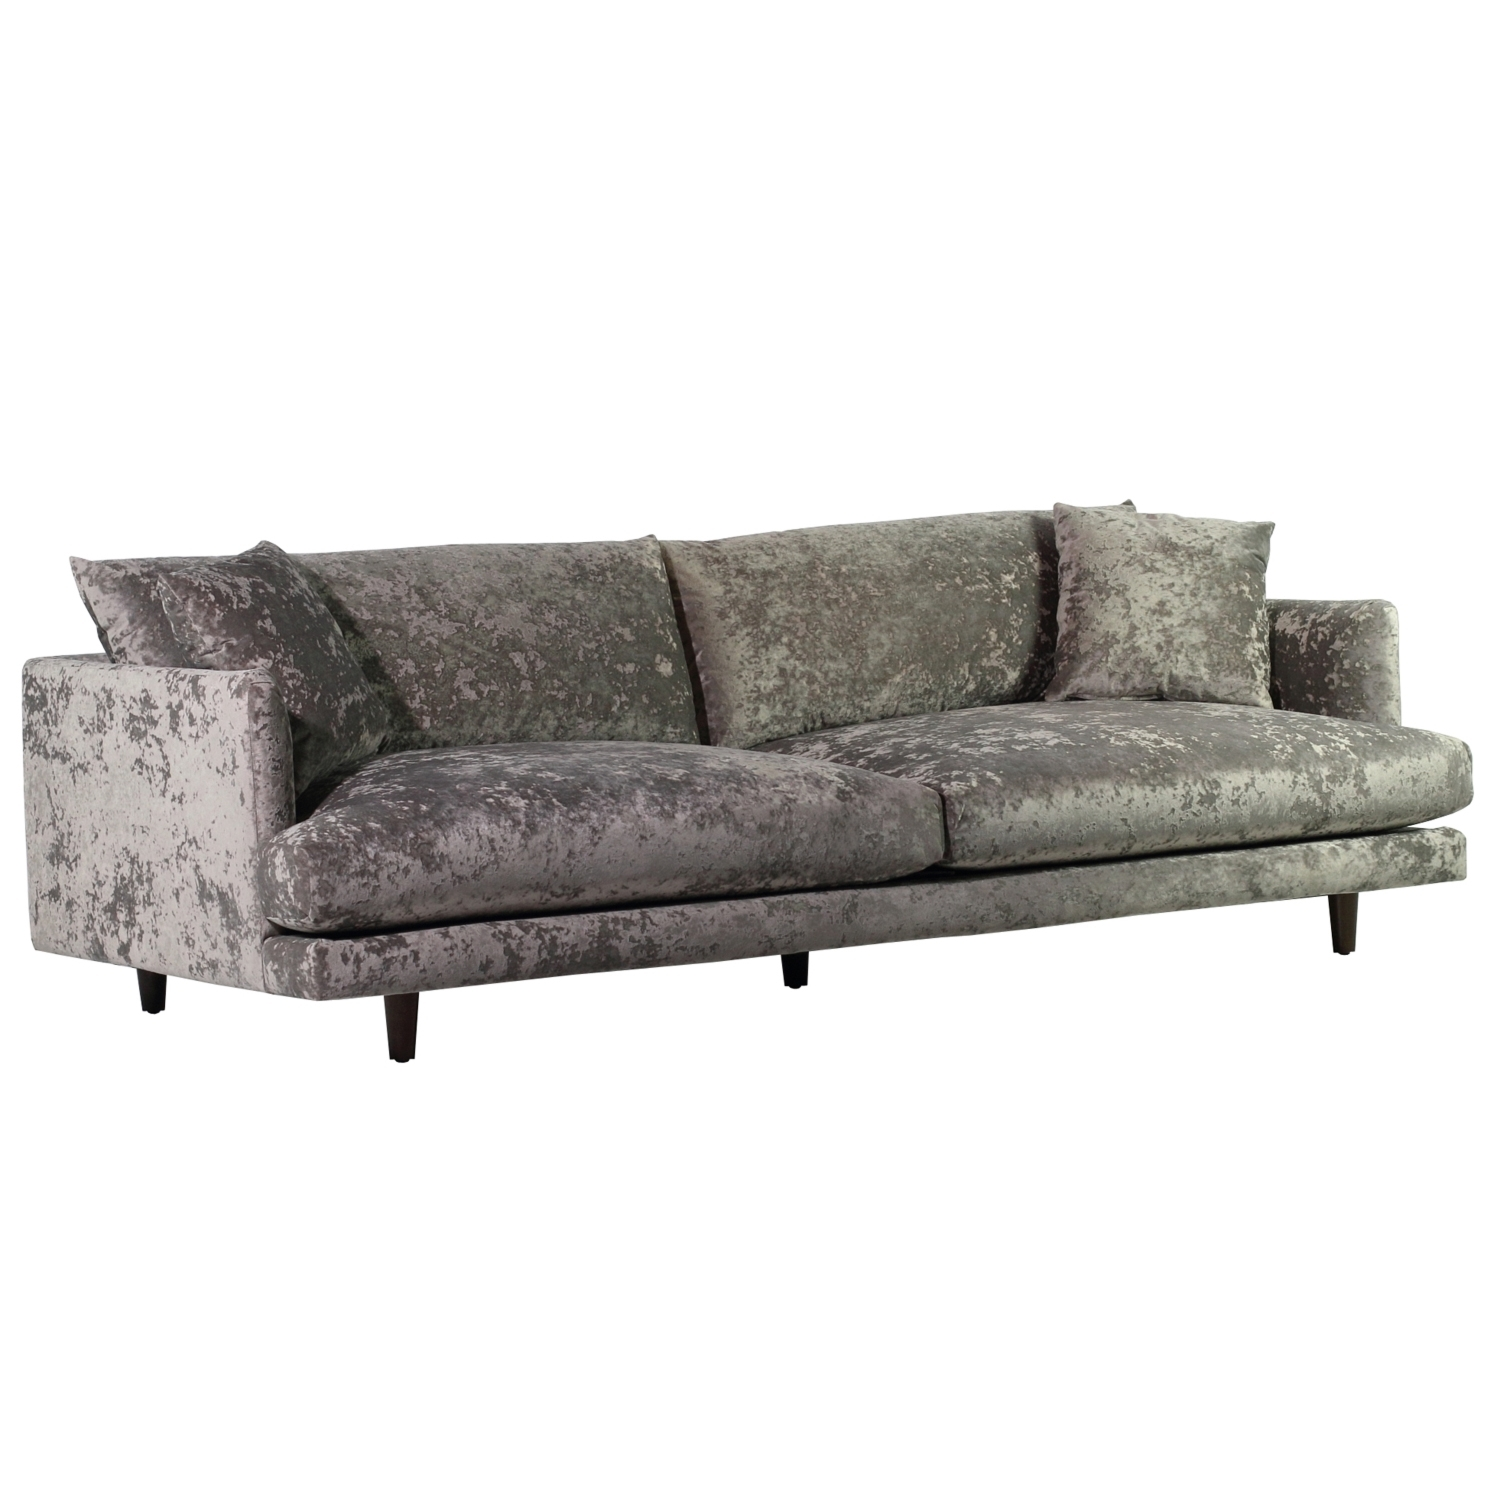 Delano Sofa - Brookline Gray - Spectra Home Furniture for Delano Smoke 3 Piece Sectionals (Image 10 of 30)